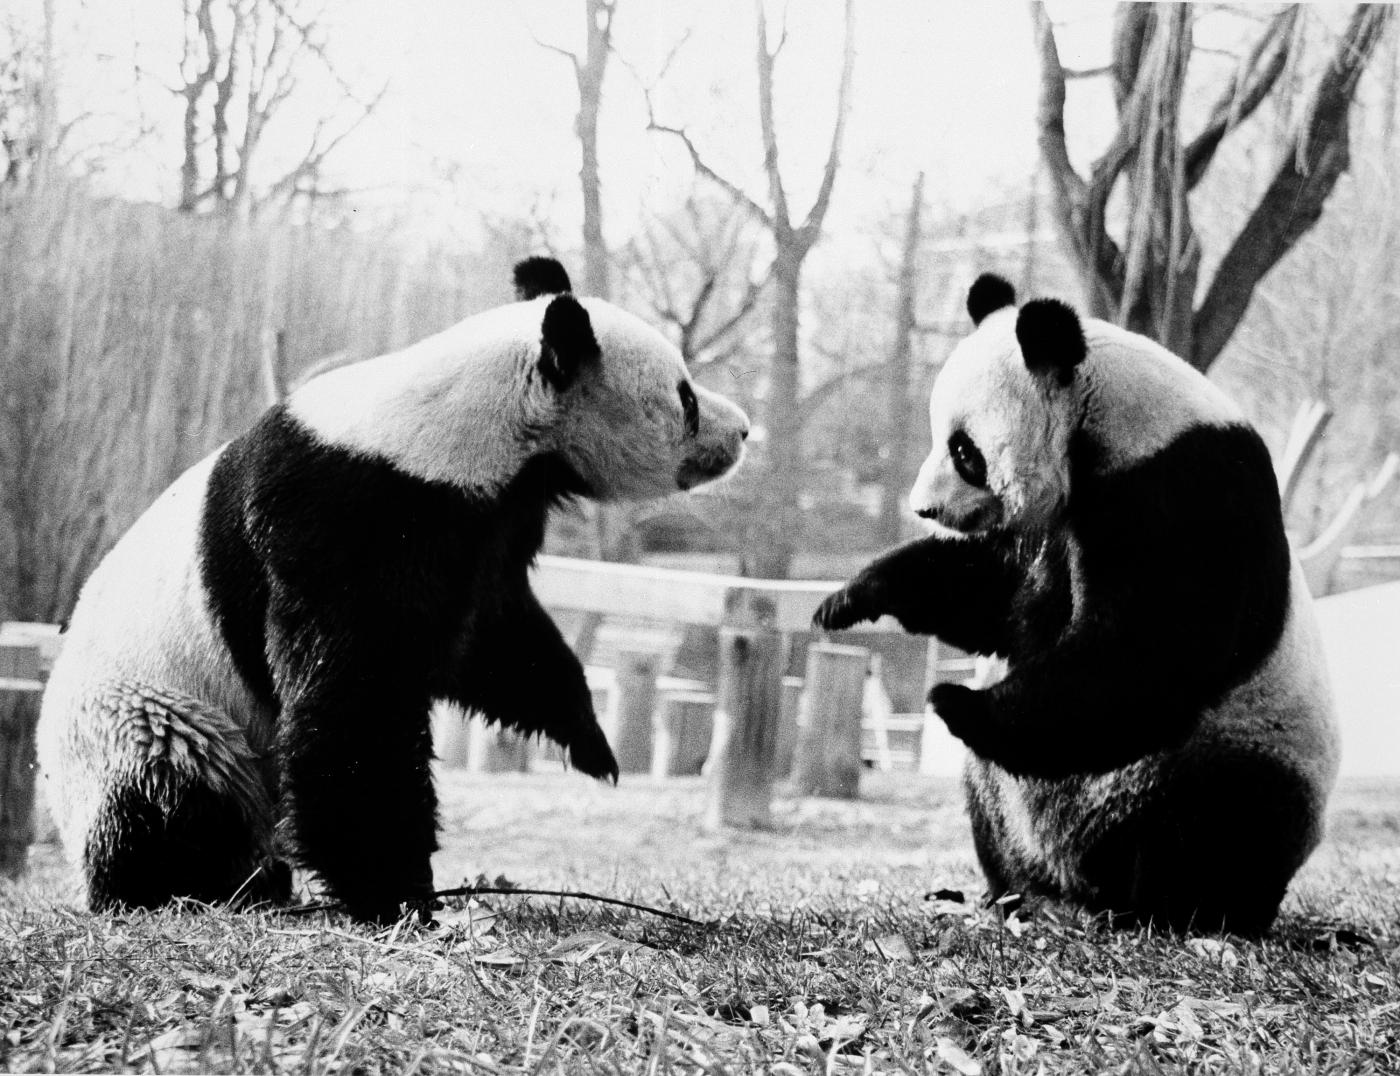 Giant pandas Ling-Ling (left) and Hsing-Hsing (right) spend time together in their outdoor habitat at the Smithsonian's National Zoo in 1985.